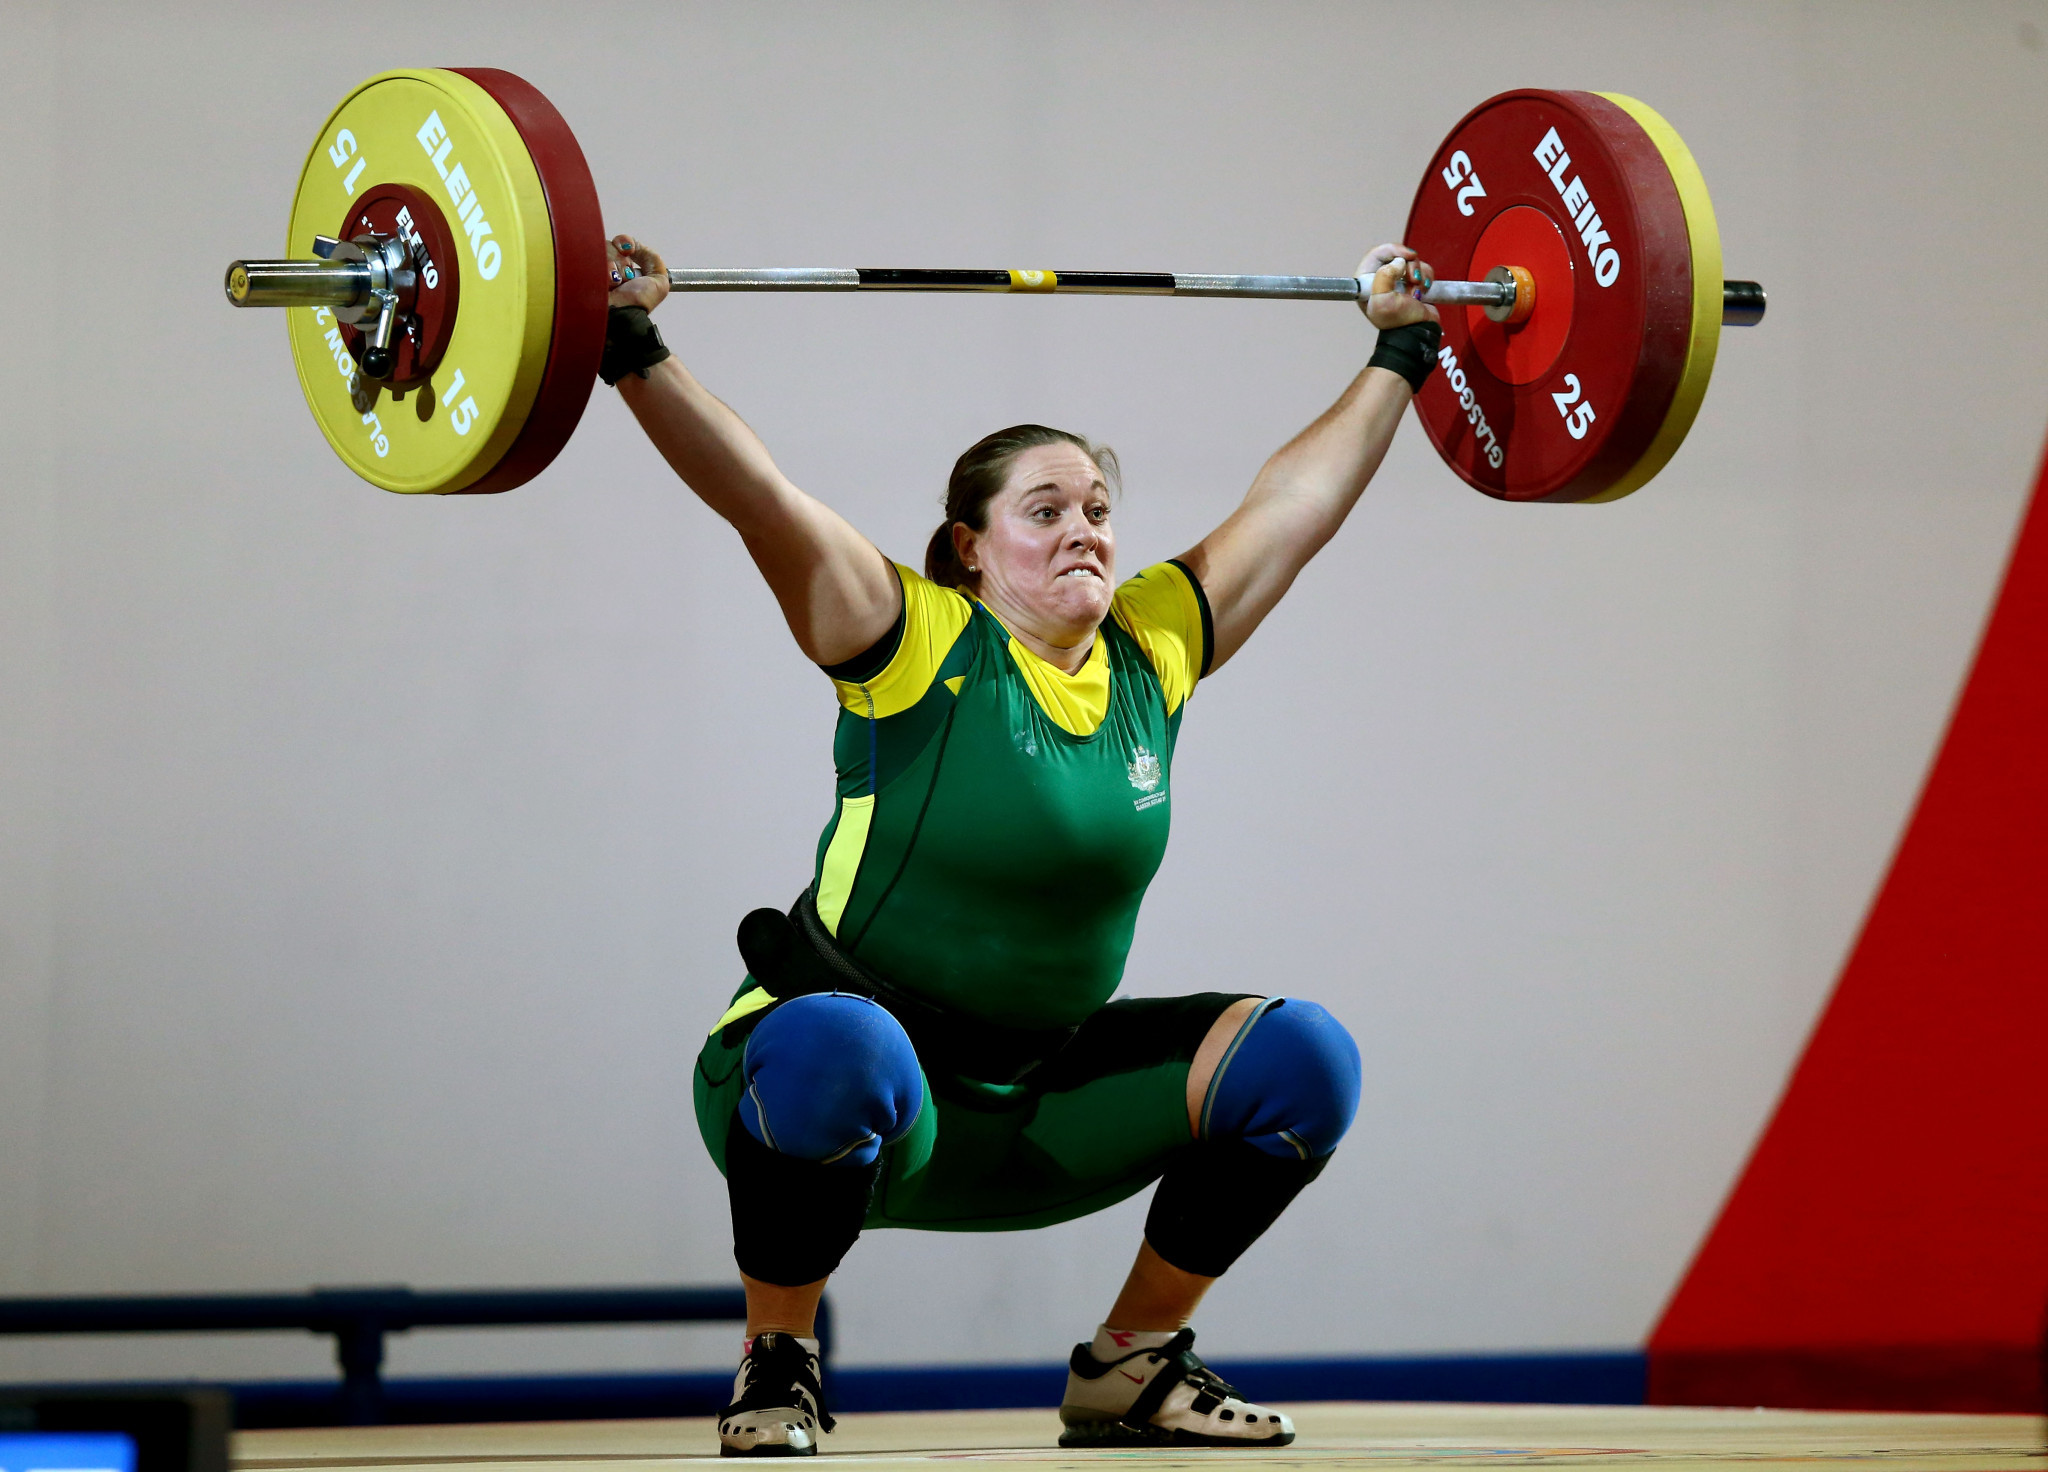 Australia name weightlifting squad for Gold Coast 2018